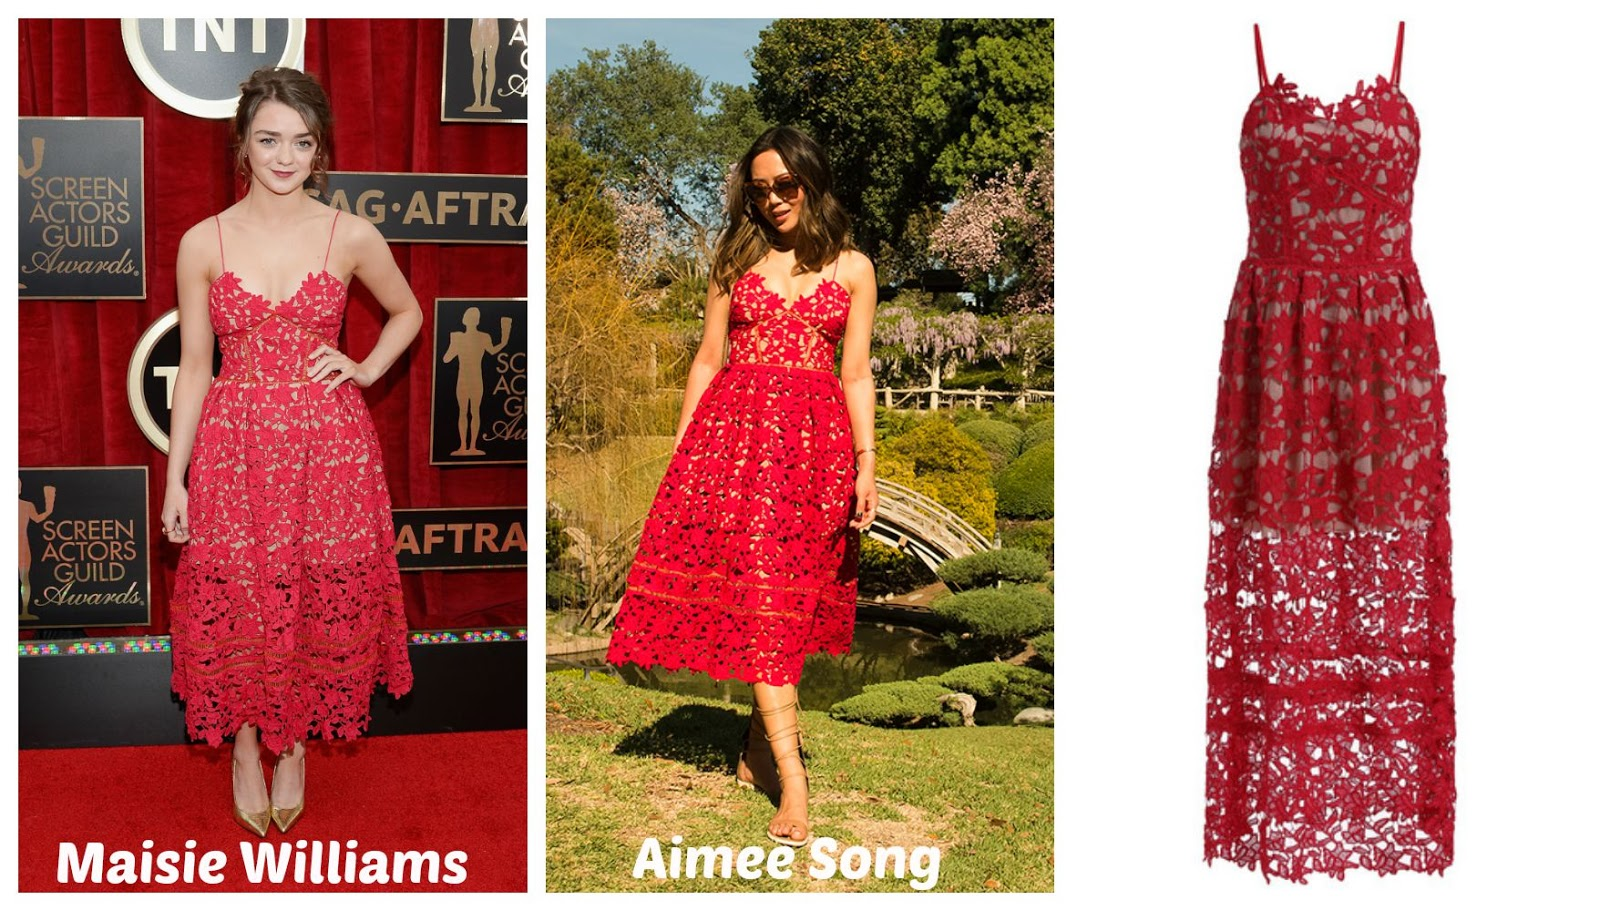 www.shein.com/Red-Spaghetti-Strap-Floral-Crochet-Hollow-Dress-p-206891-cat-1727.html?aff_id=3846